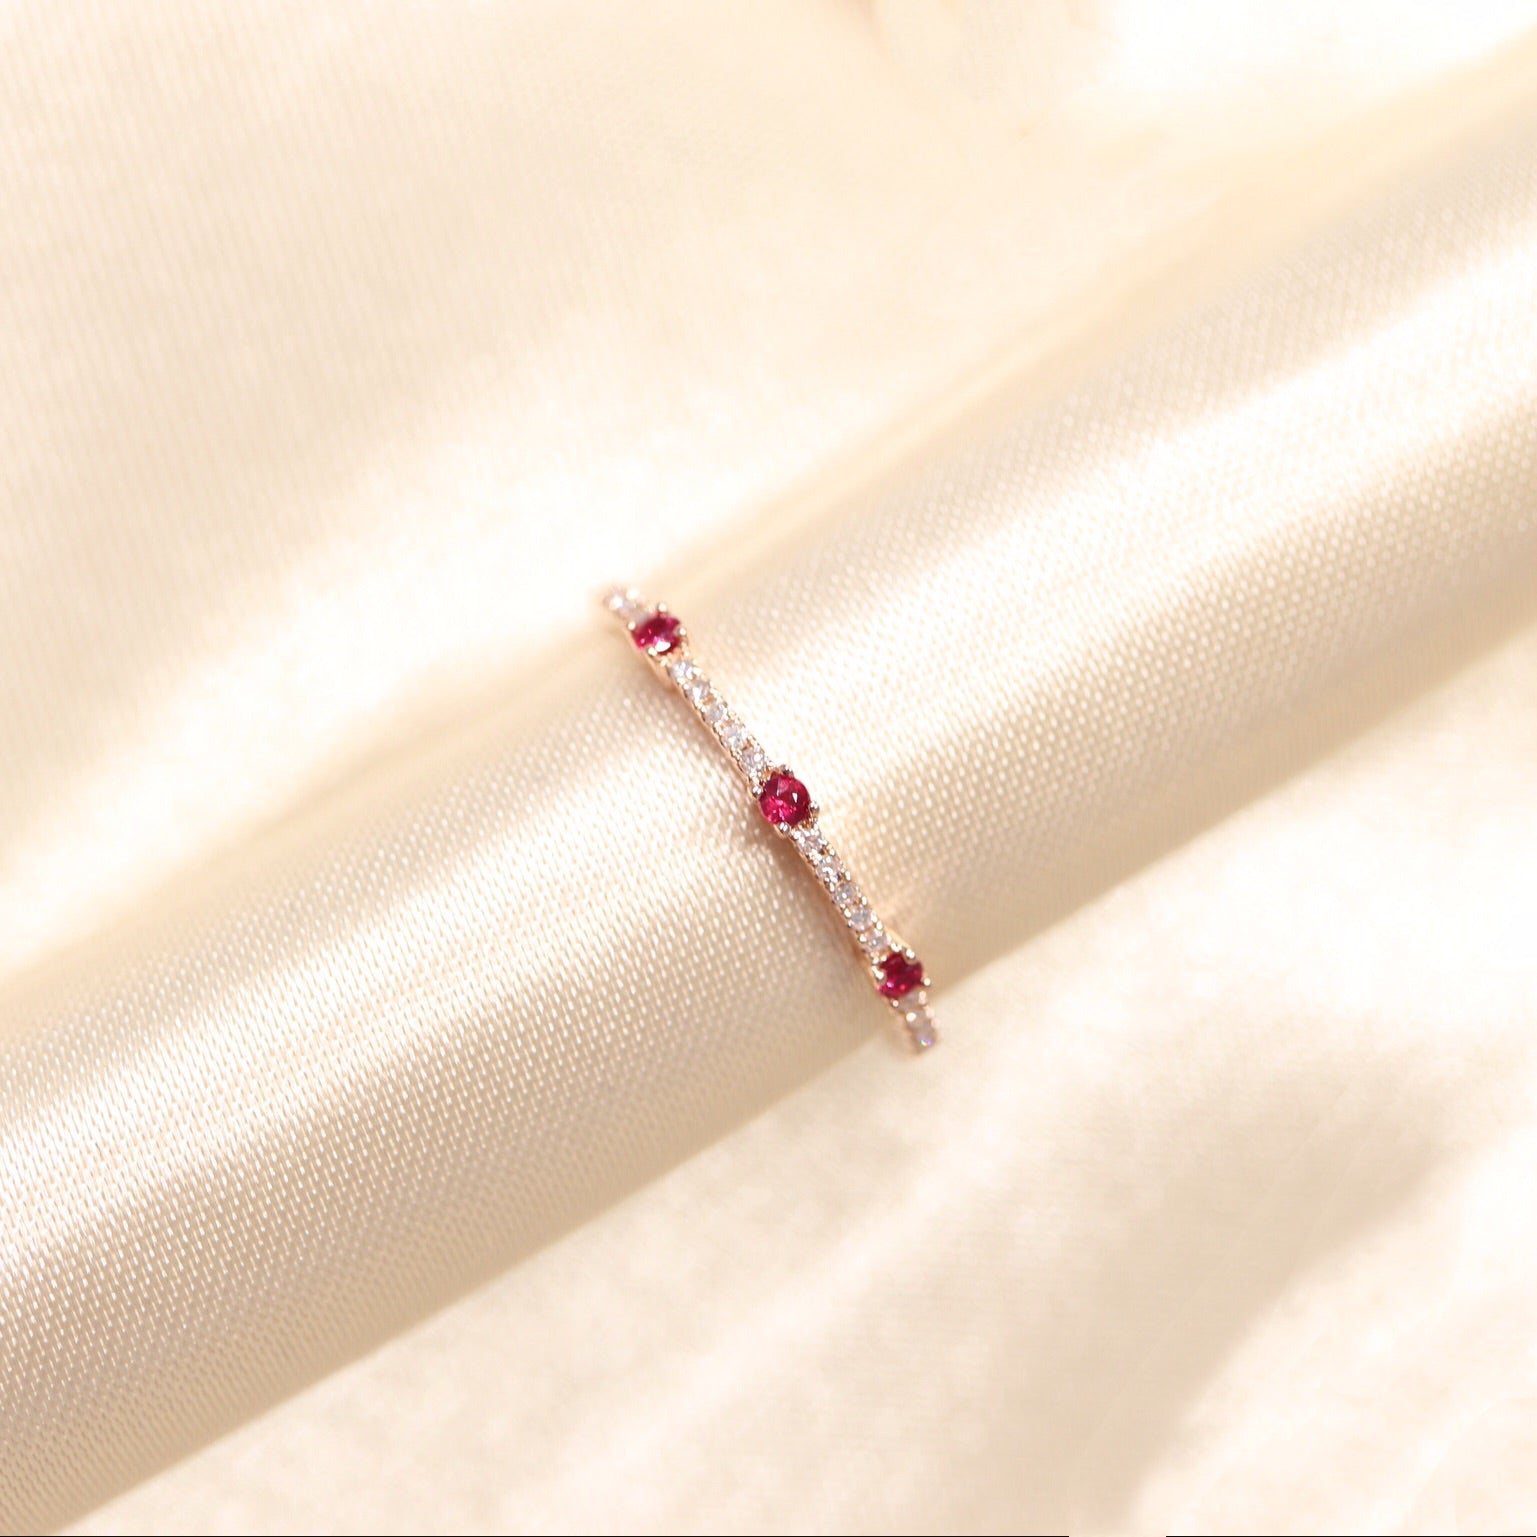 14K Gold & Precious Color Gemstone Ring - Ice Motif